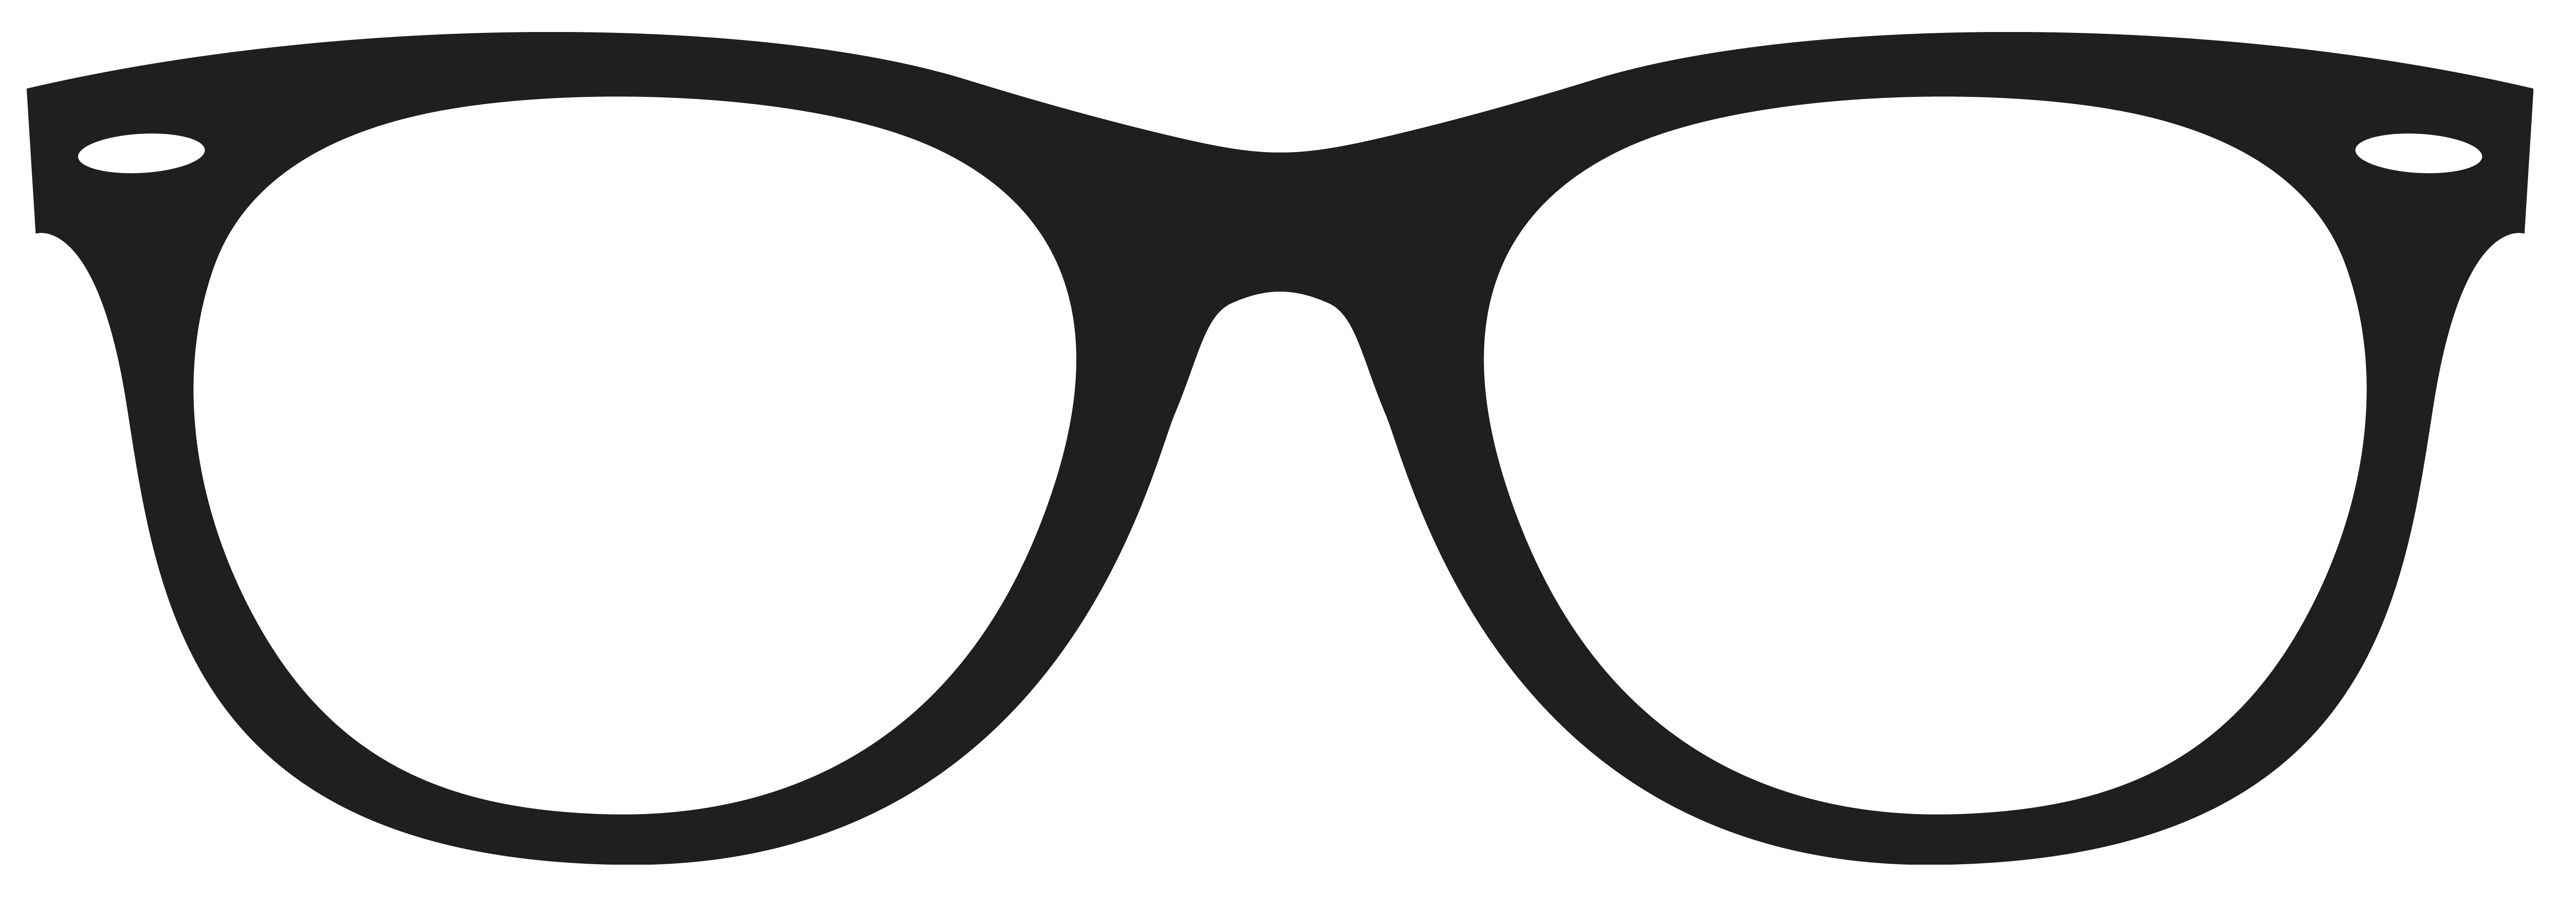 Movember png image gallery. Glasses clipart prop